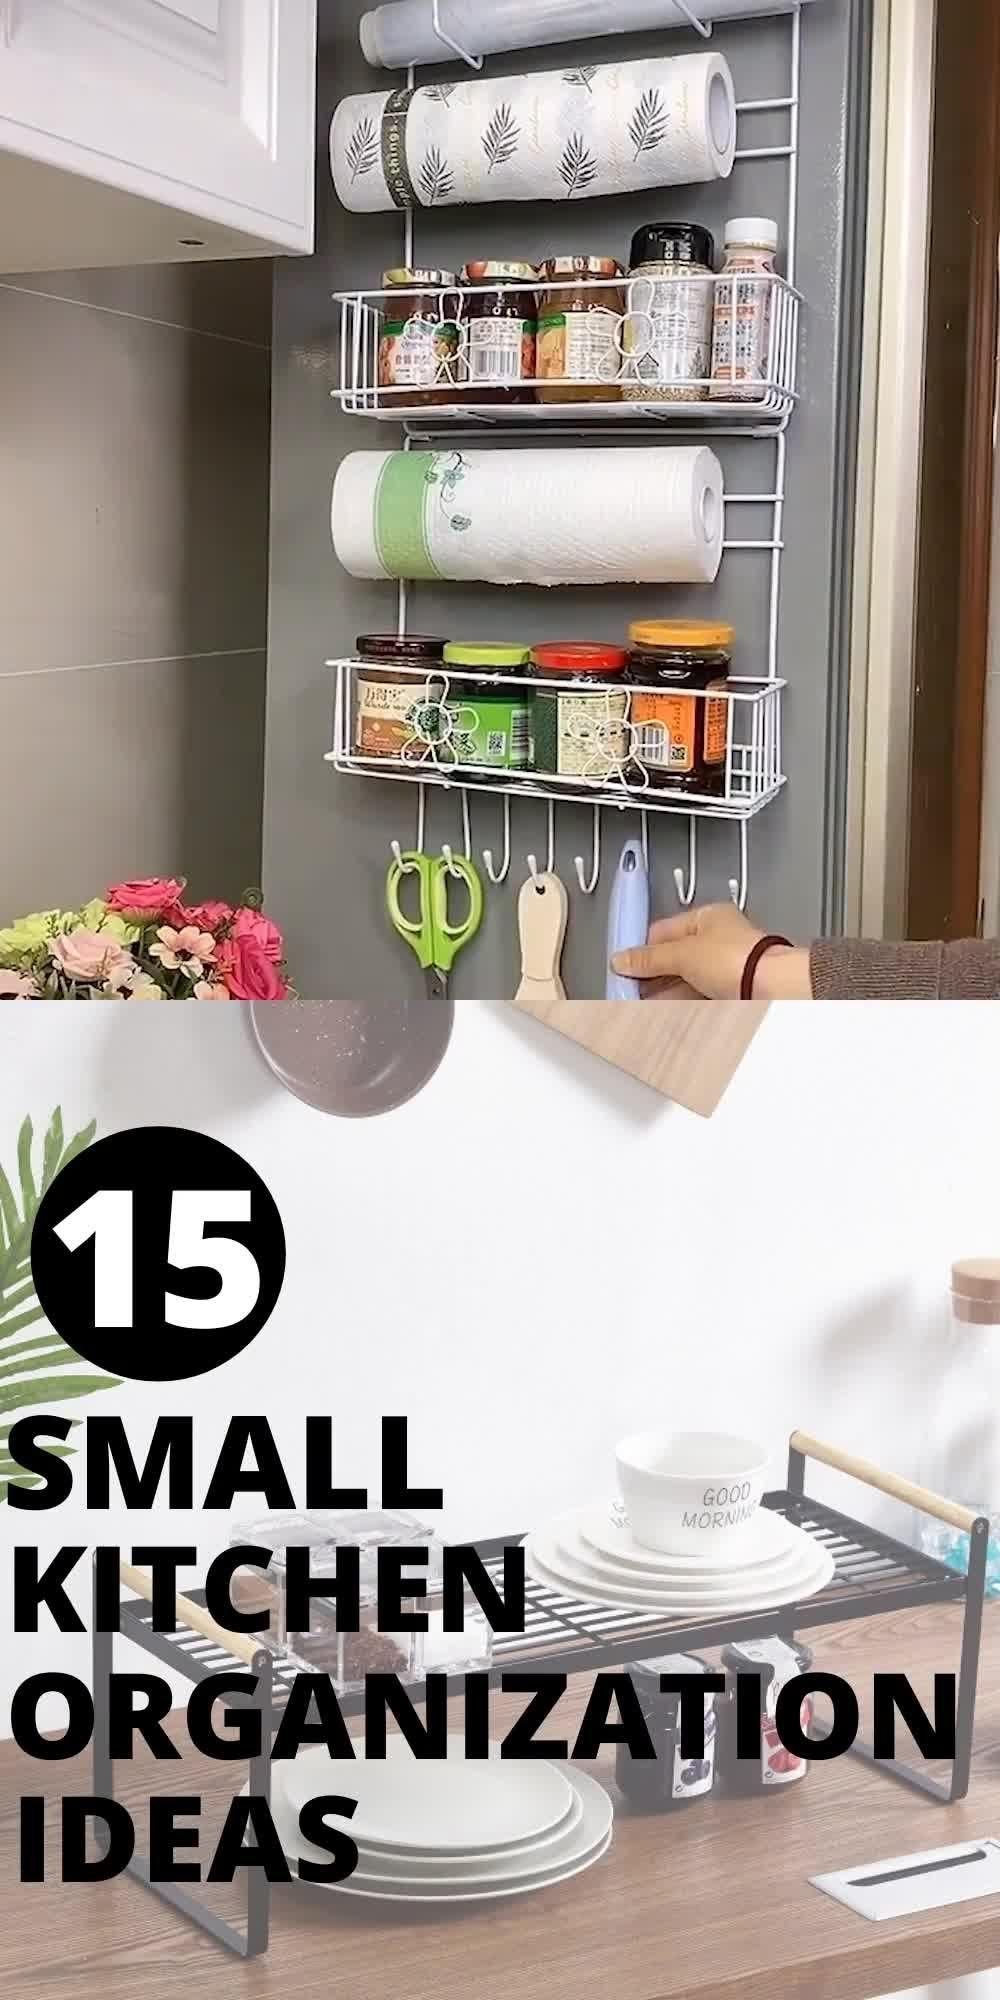 15 Amazing Organization Ideas For Small Kitchen Cabinets ( 3 is everybody's favorite)